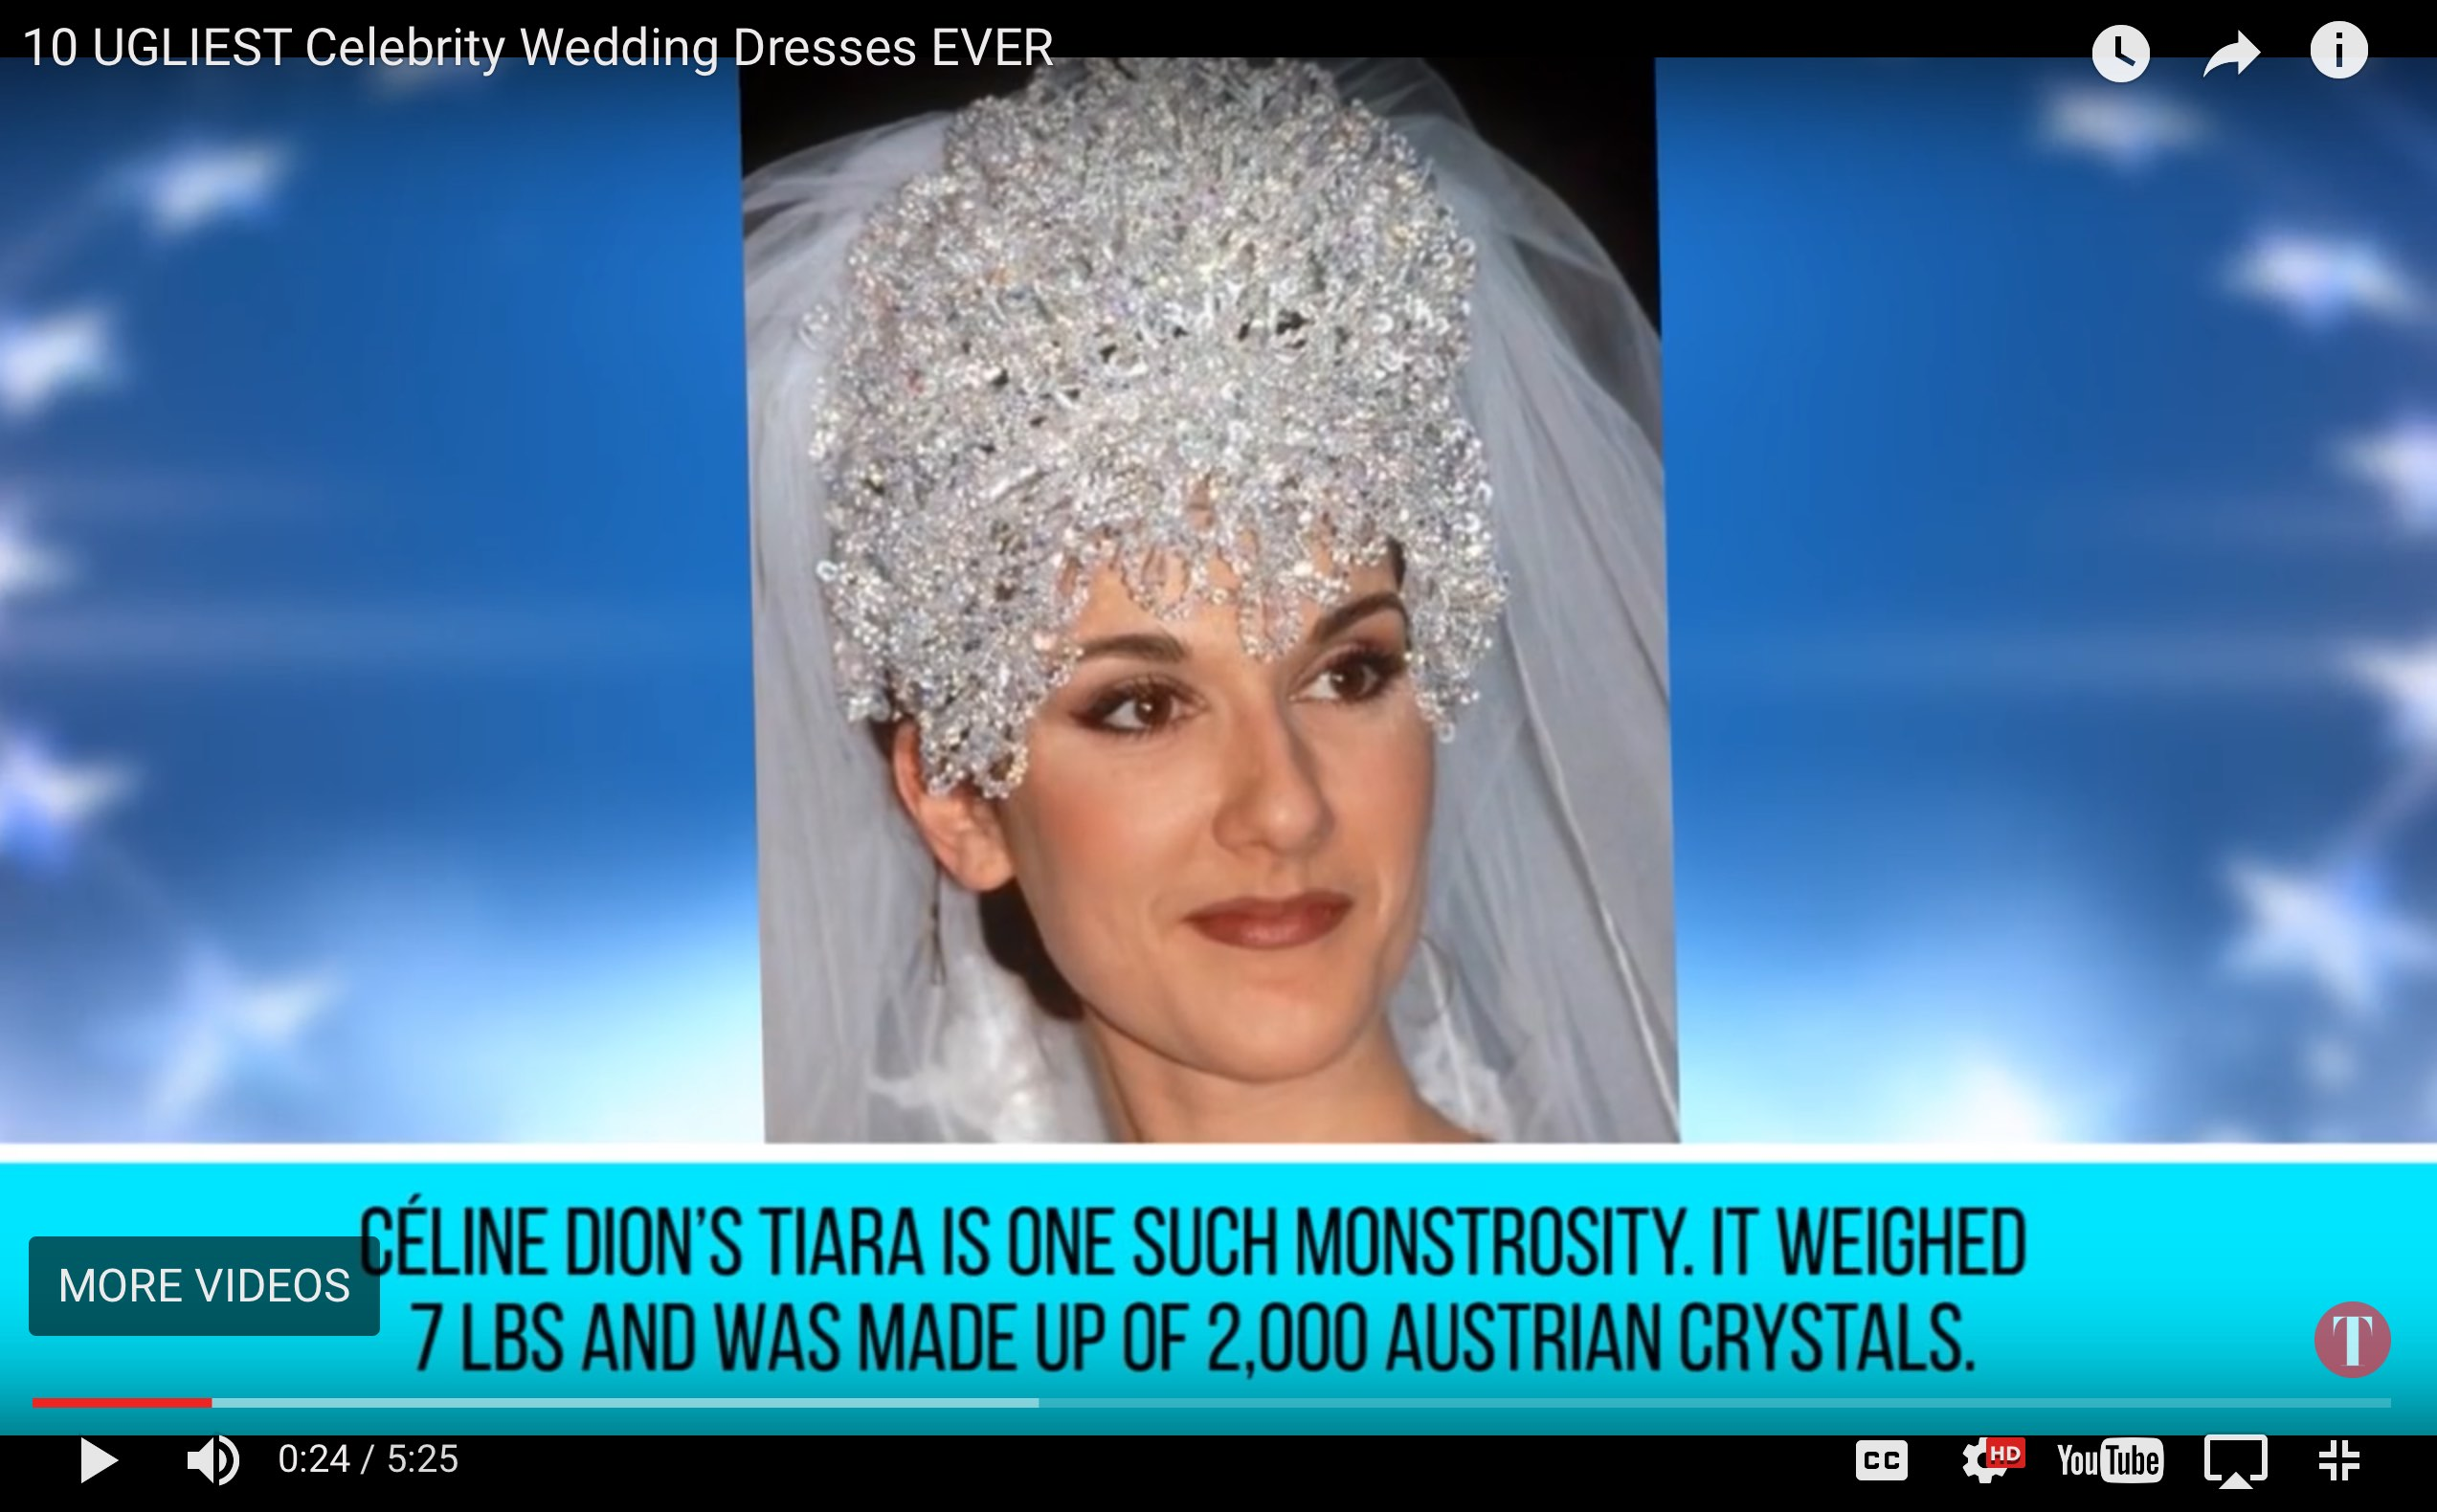 10 ugliest celebrity wedding dresses EVER!